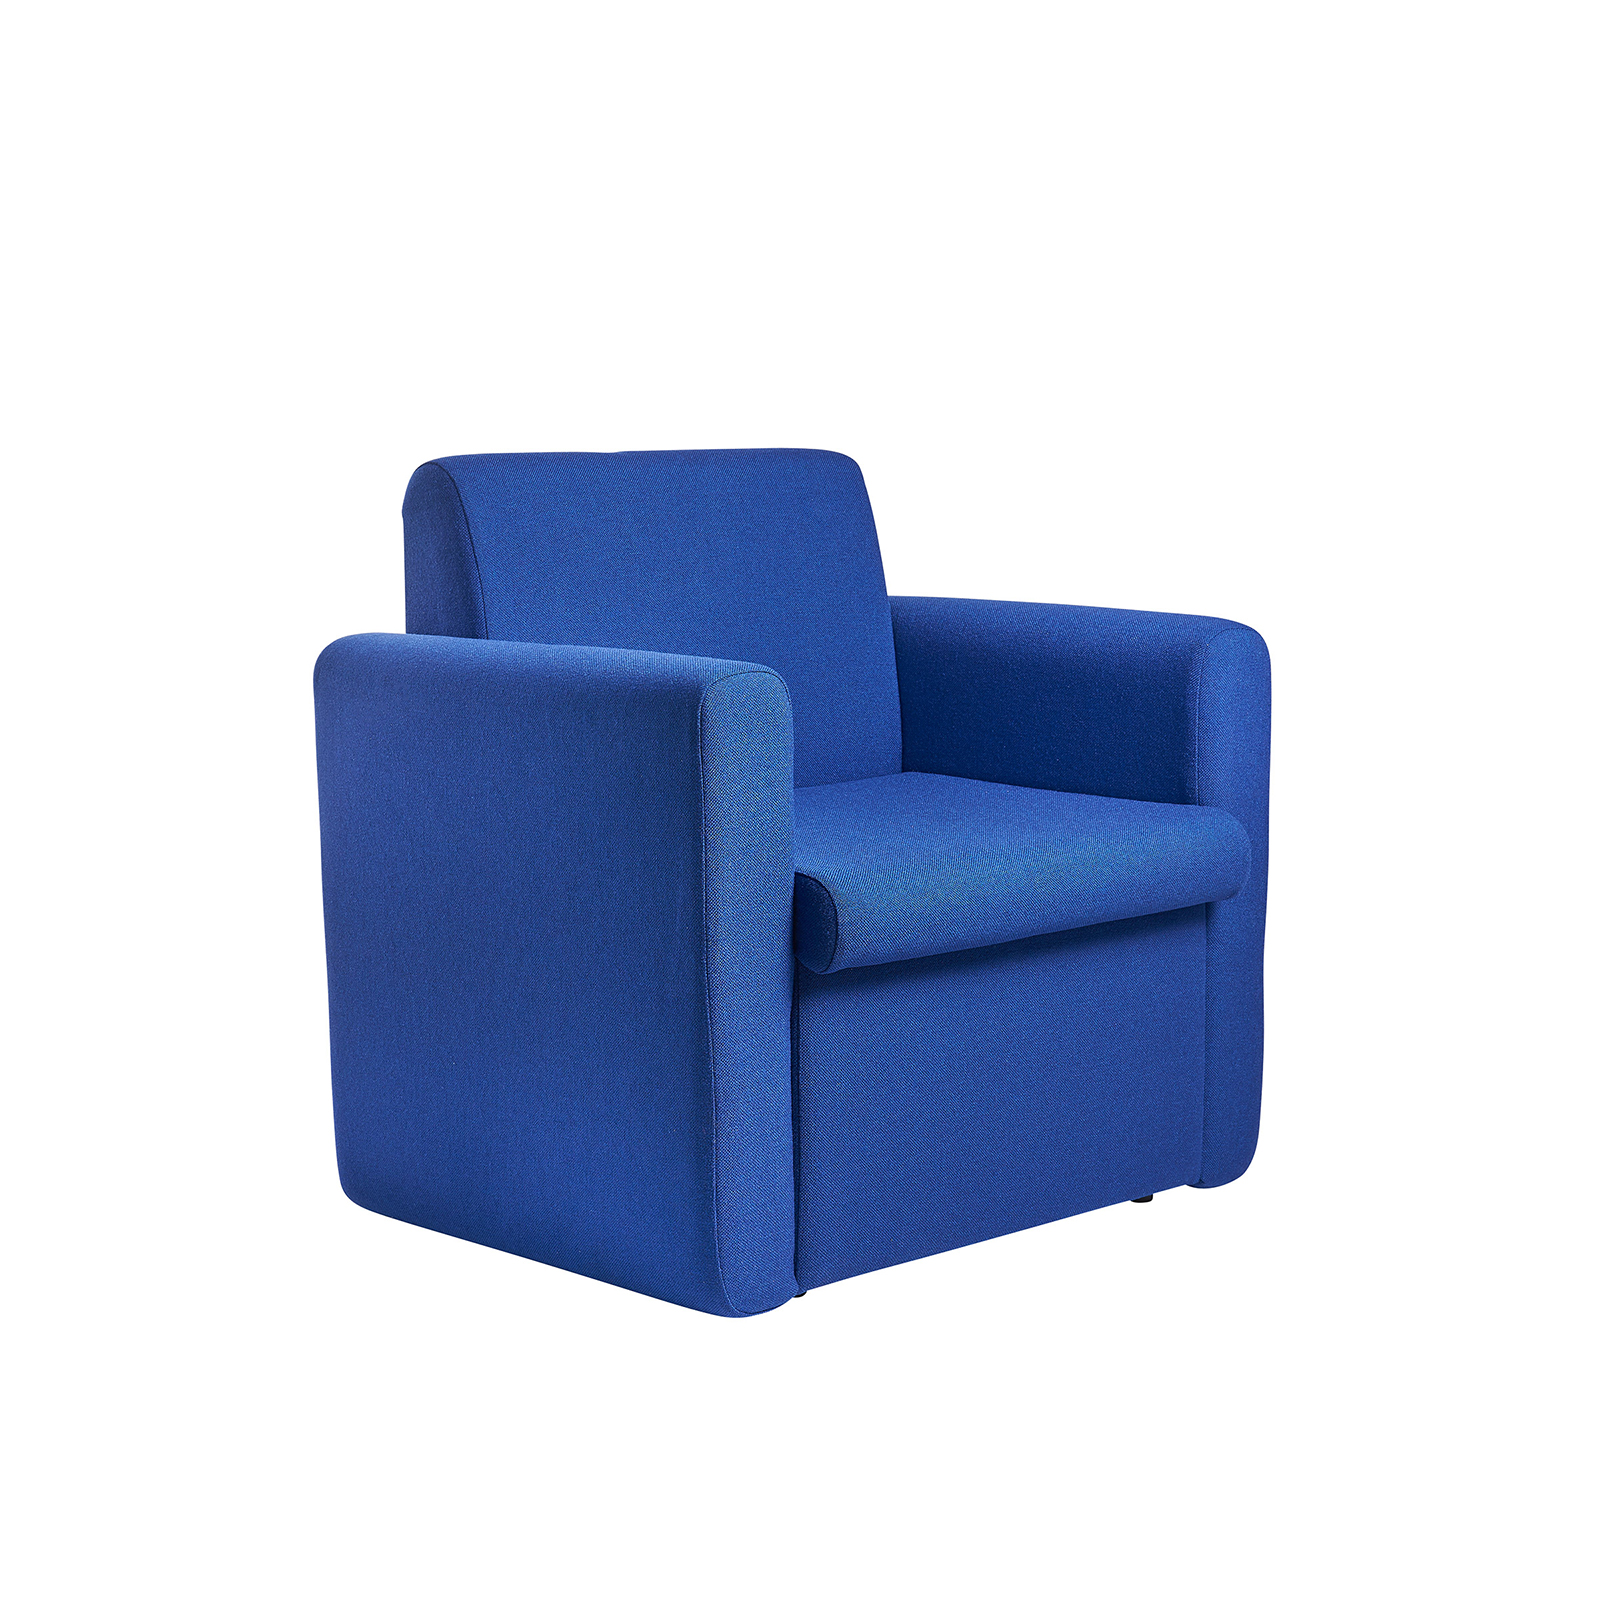 Alto modular reception seating armchair - blue